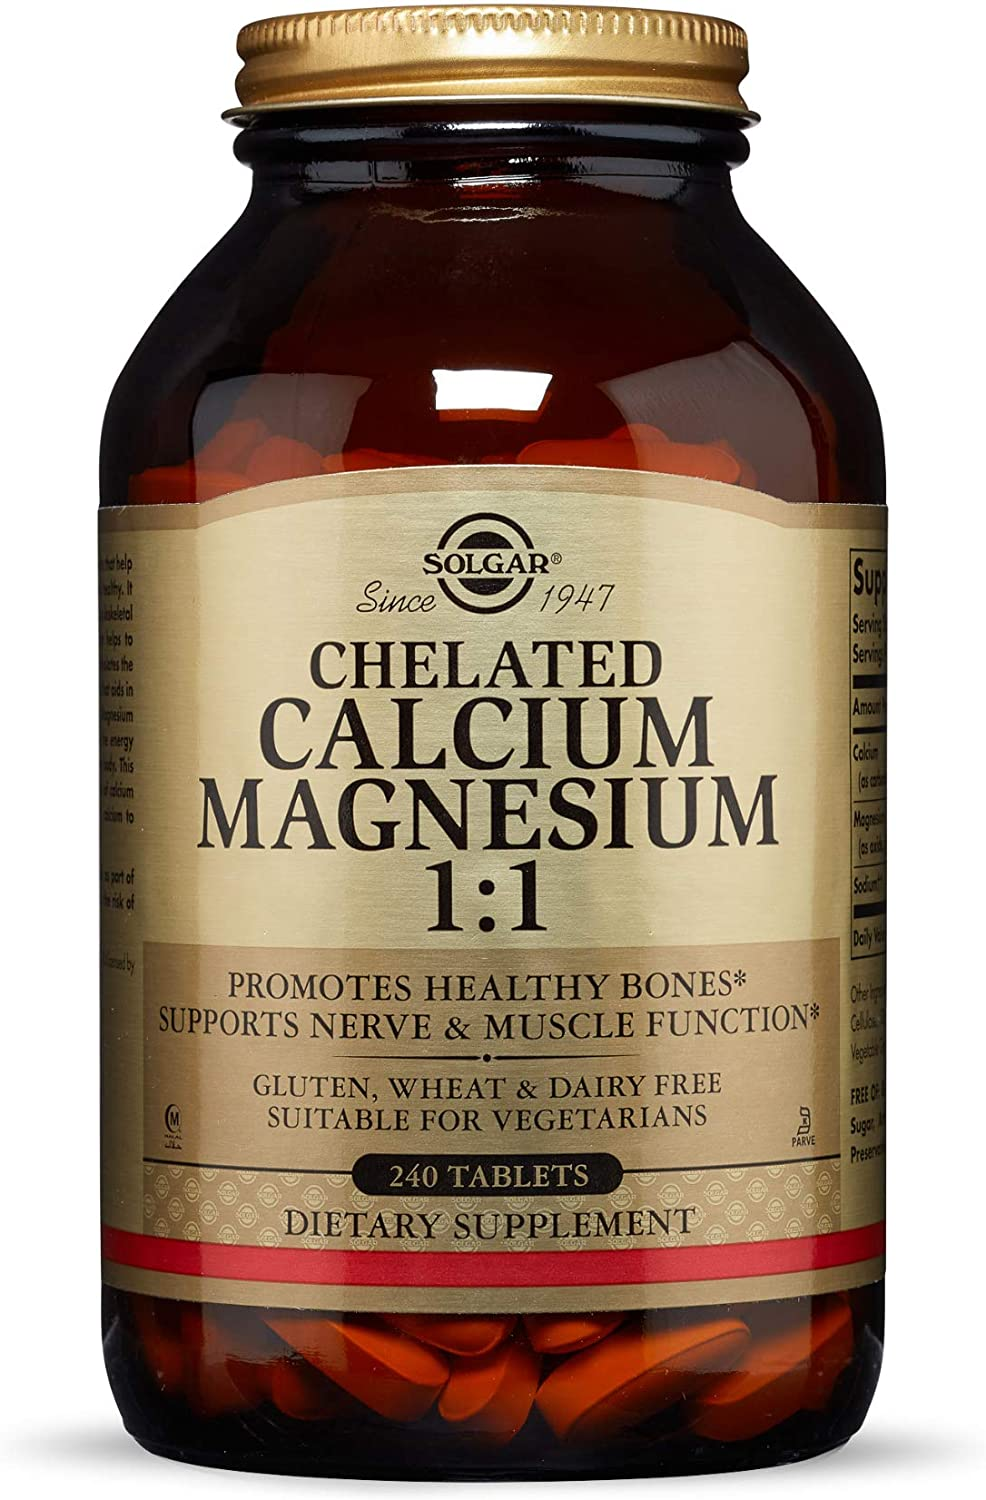 Solgar Chelated Calcium Magnesium 1:1, 240 Tablets - Promotes Healthy Bones - Supports Nerve & Muscle Function - Non-GMO, Vegan, Gluten Free, Dairy Free, Kosher, Halal - 60 Servings